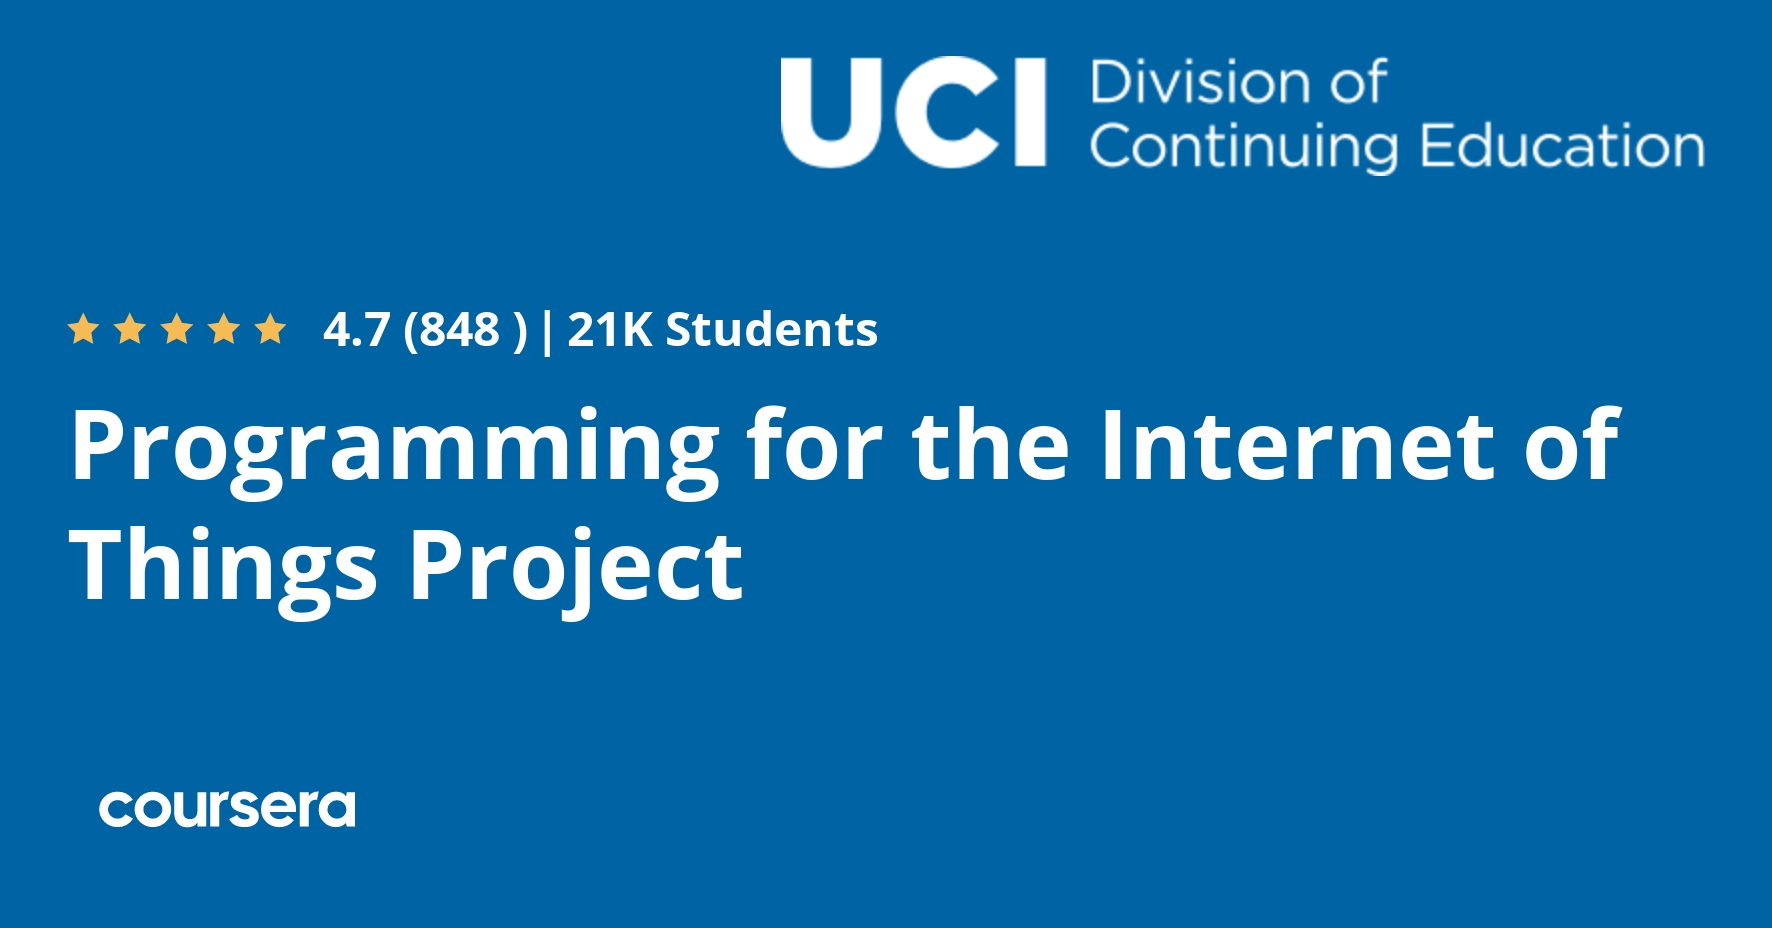 Programming for the Internet of Things Project (Coursera)